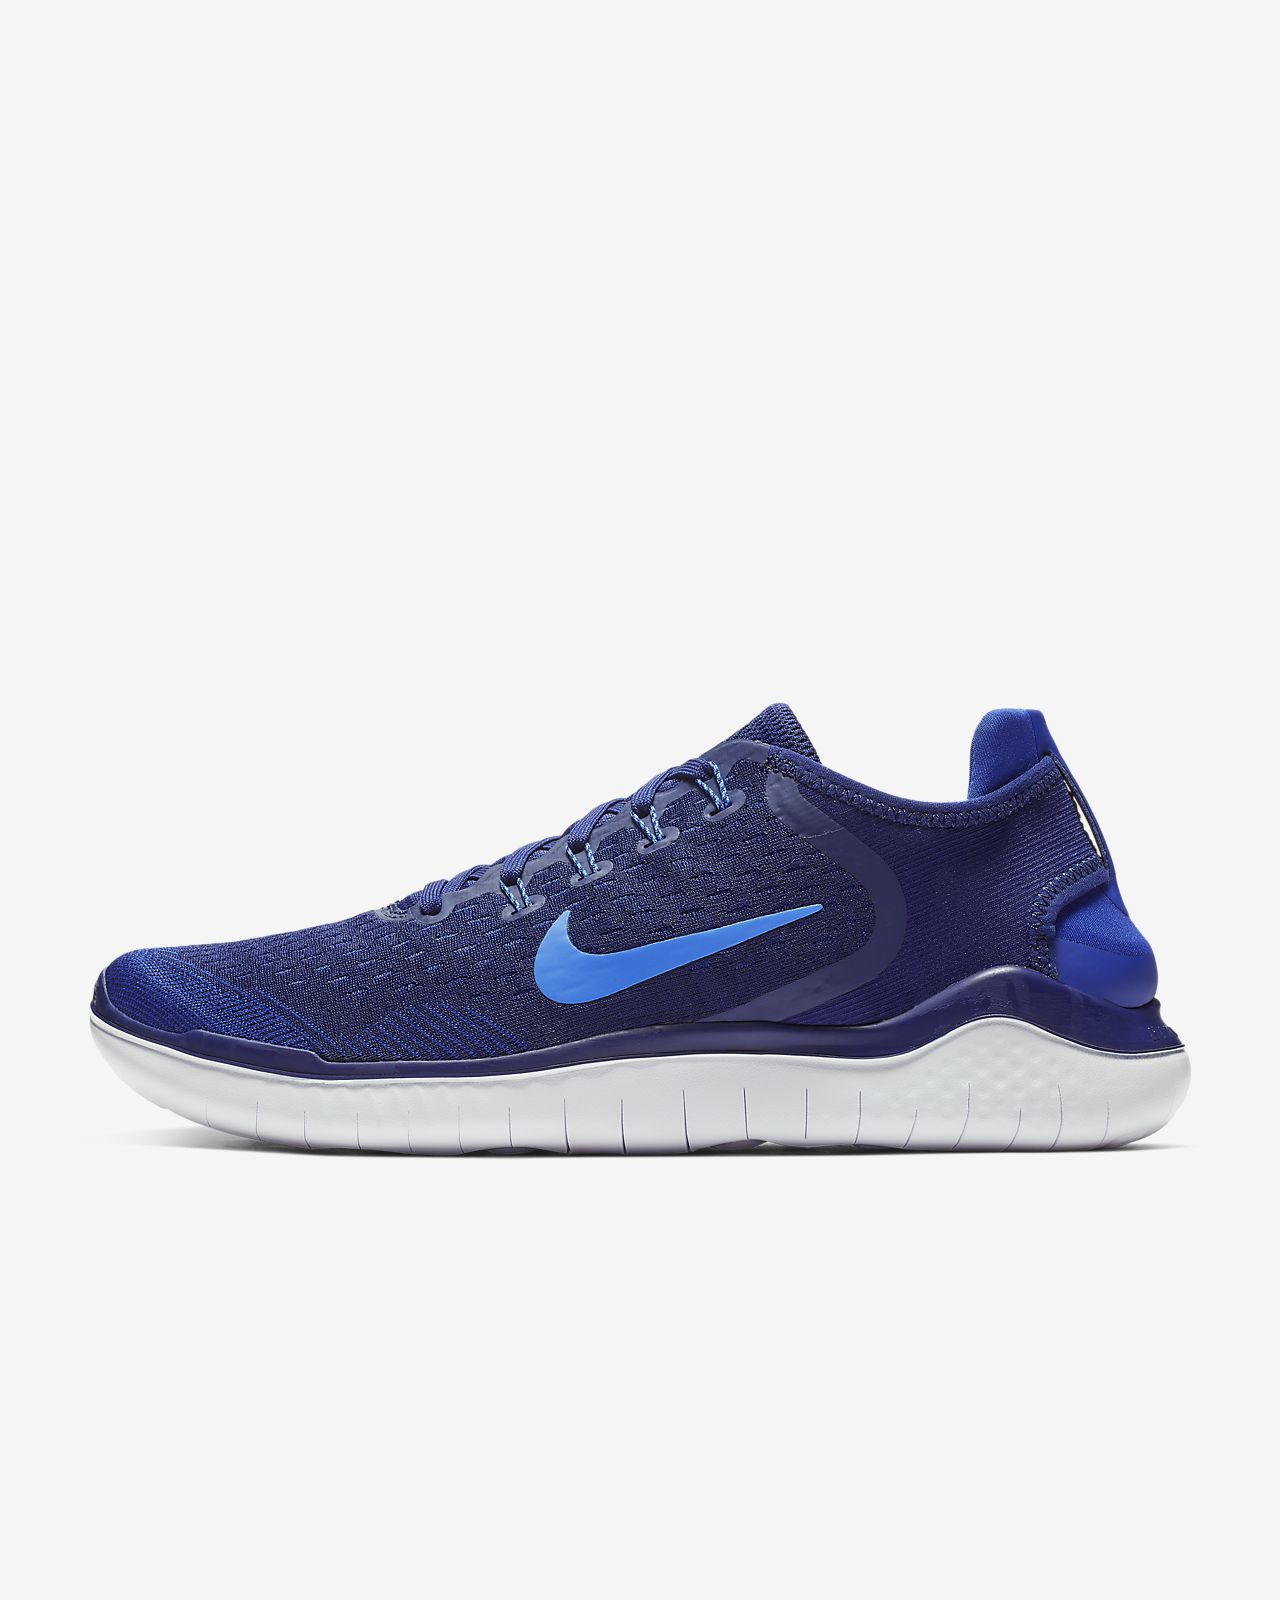 great fit new concept 100% high quality Nike Free RN 2018 Herren-Laufschuh